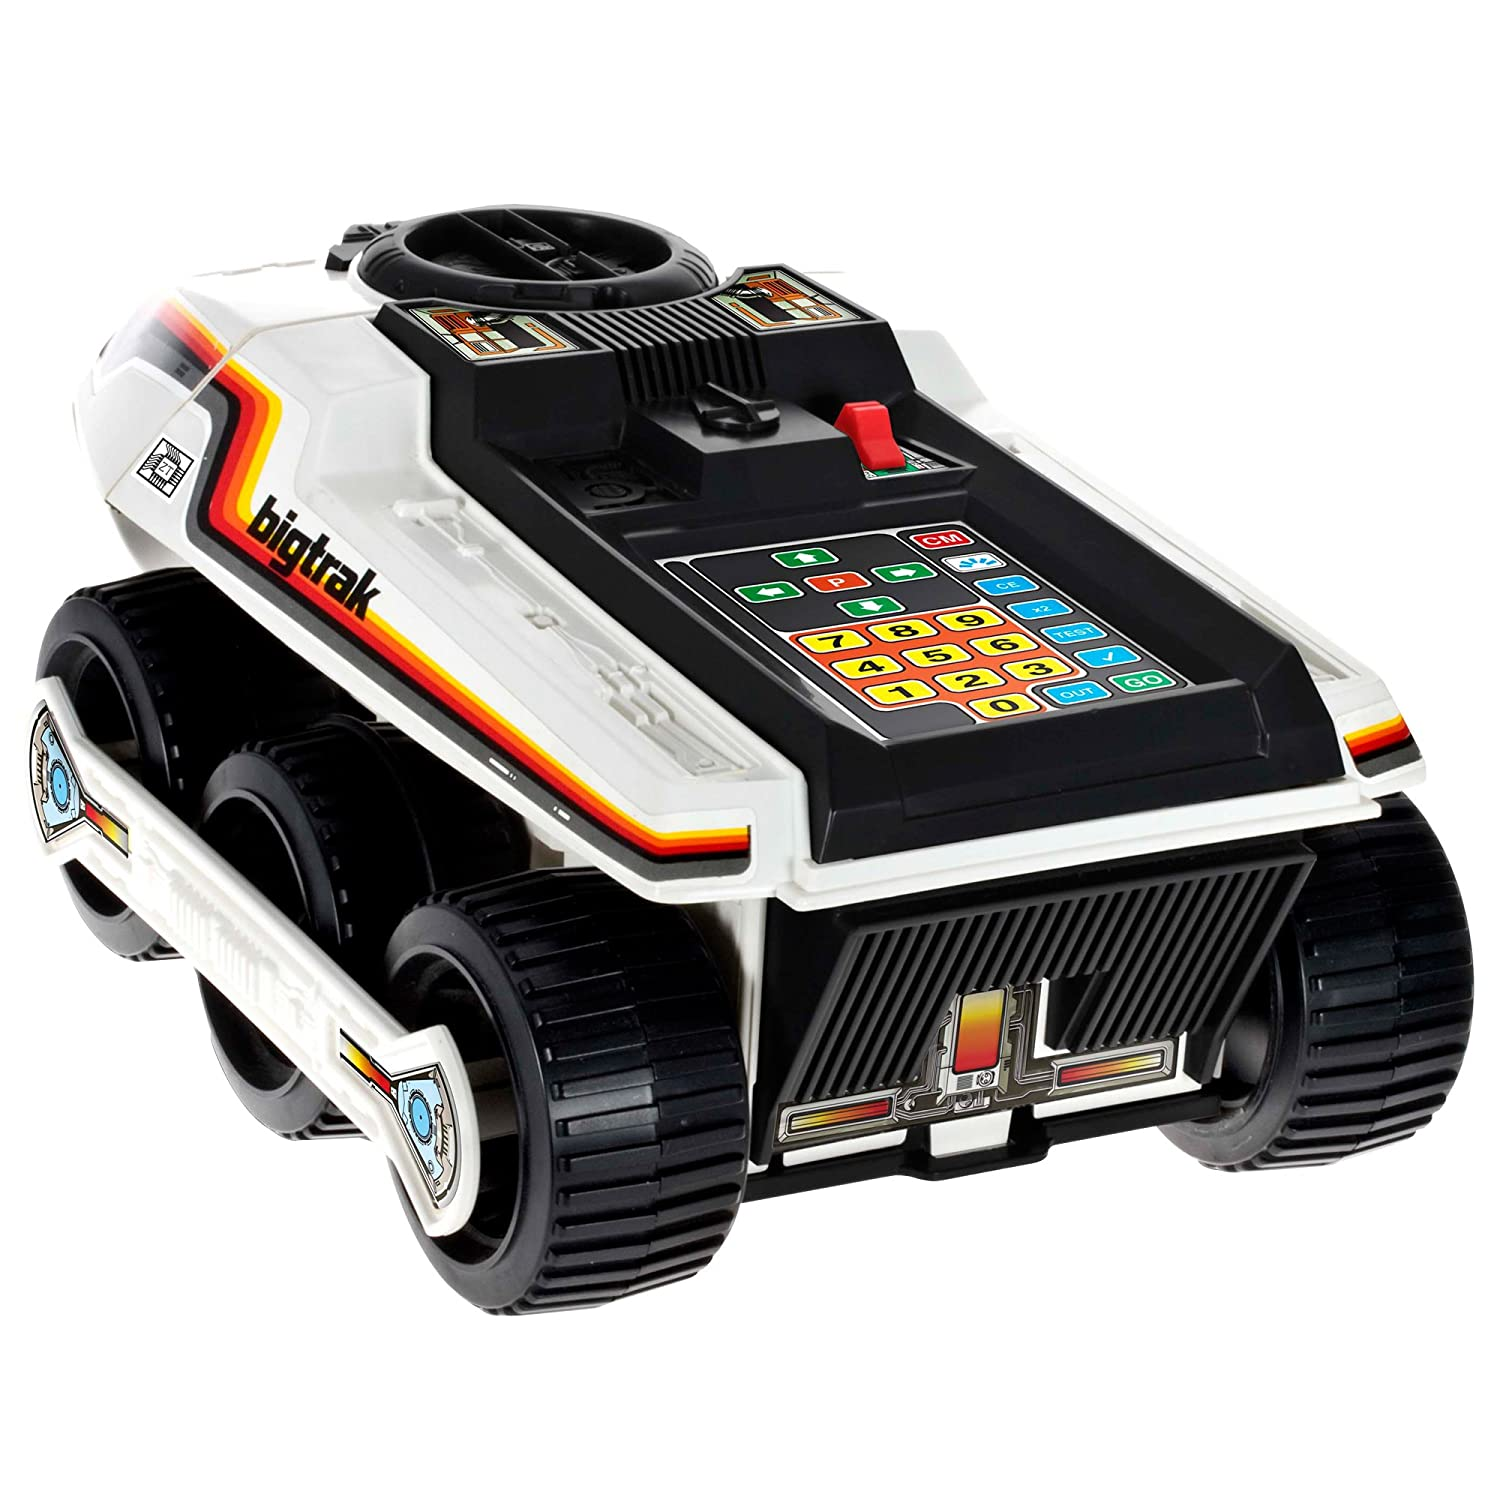 Amazon Bigtrak by Zeon Limited Toys & Games